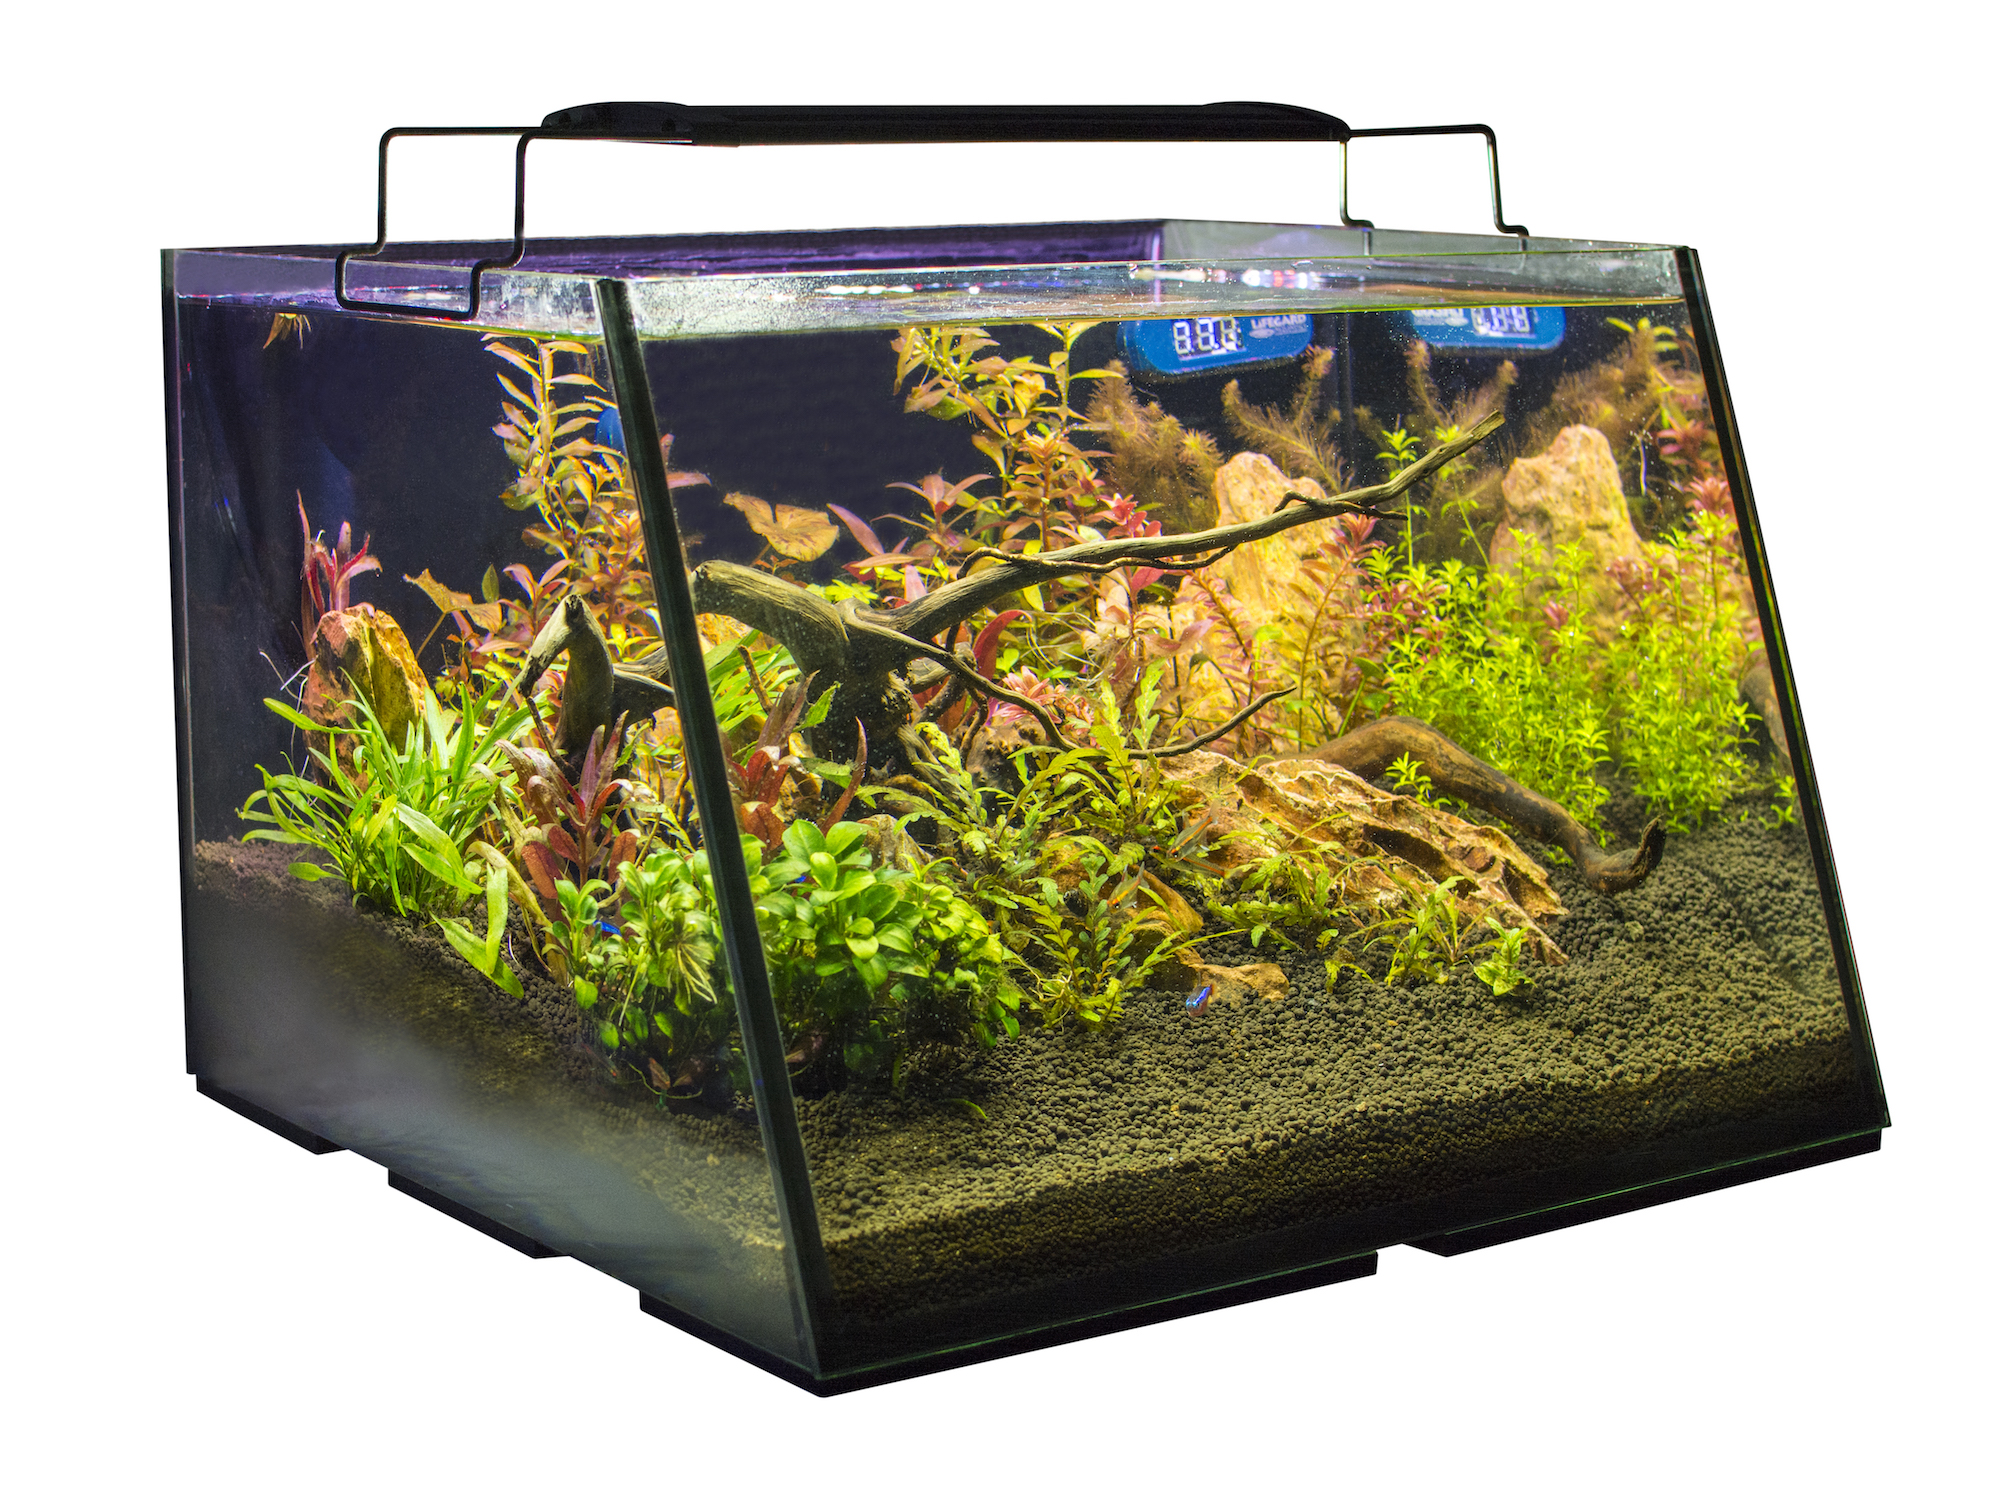 LIFEGARD® FULL VIEW Aquariums with Internal Power Filters (Patented)